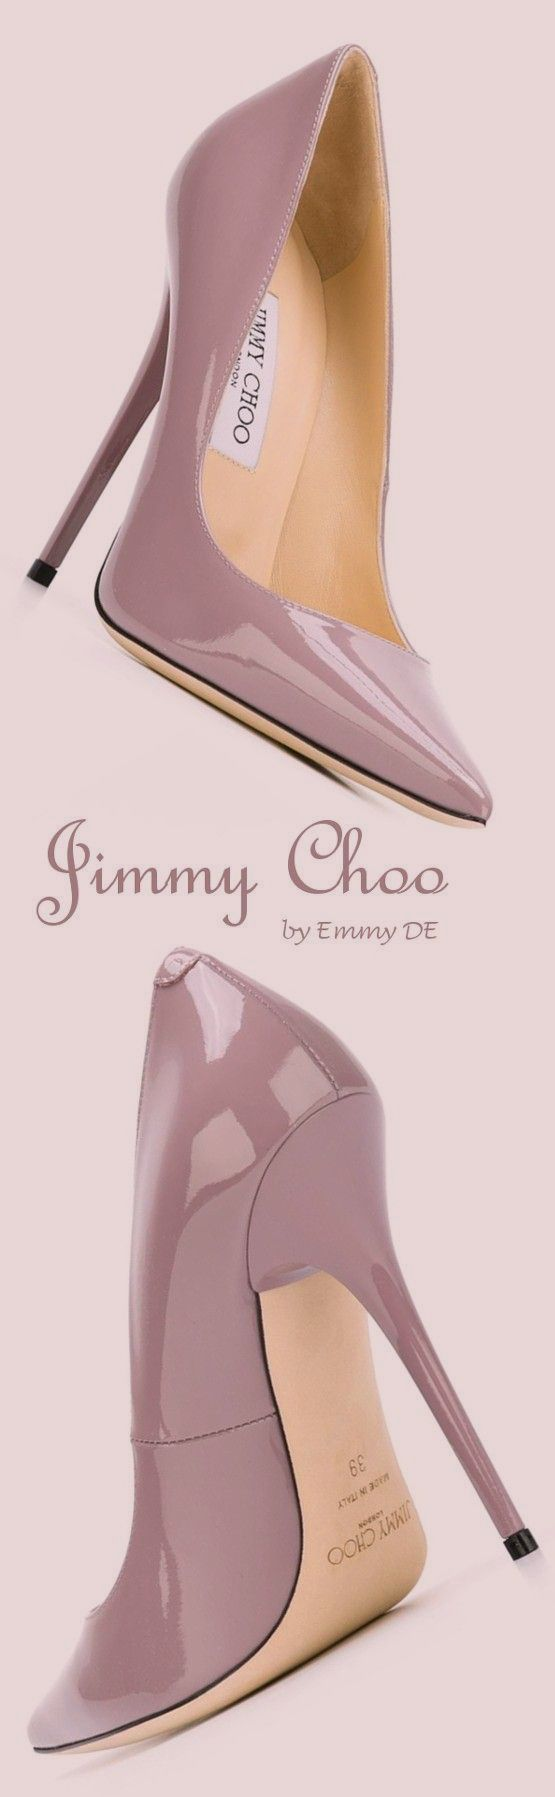 Jimmy Choo | House of Beccaria~. Via @tcorbeil1947. #JimmyChoo #heels